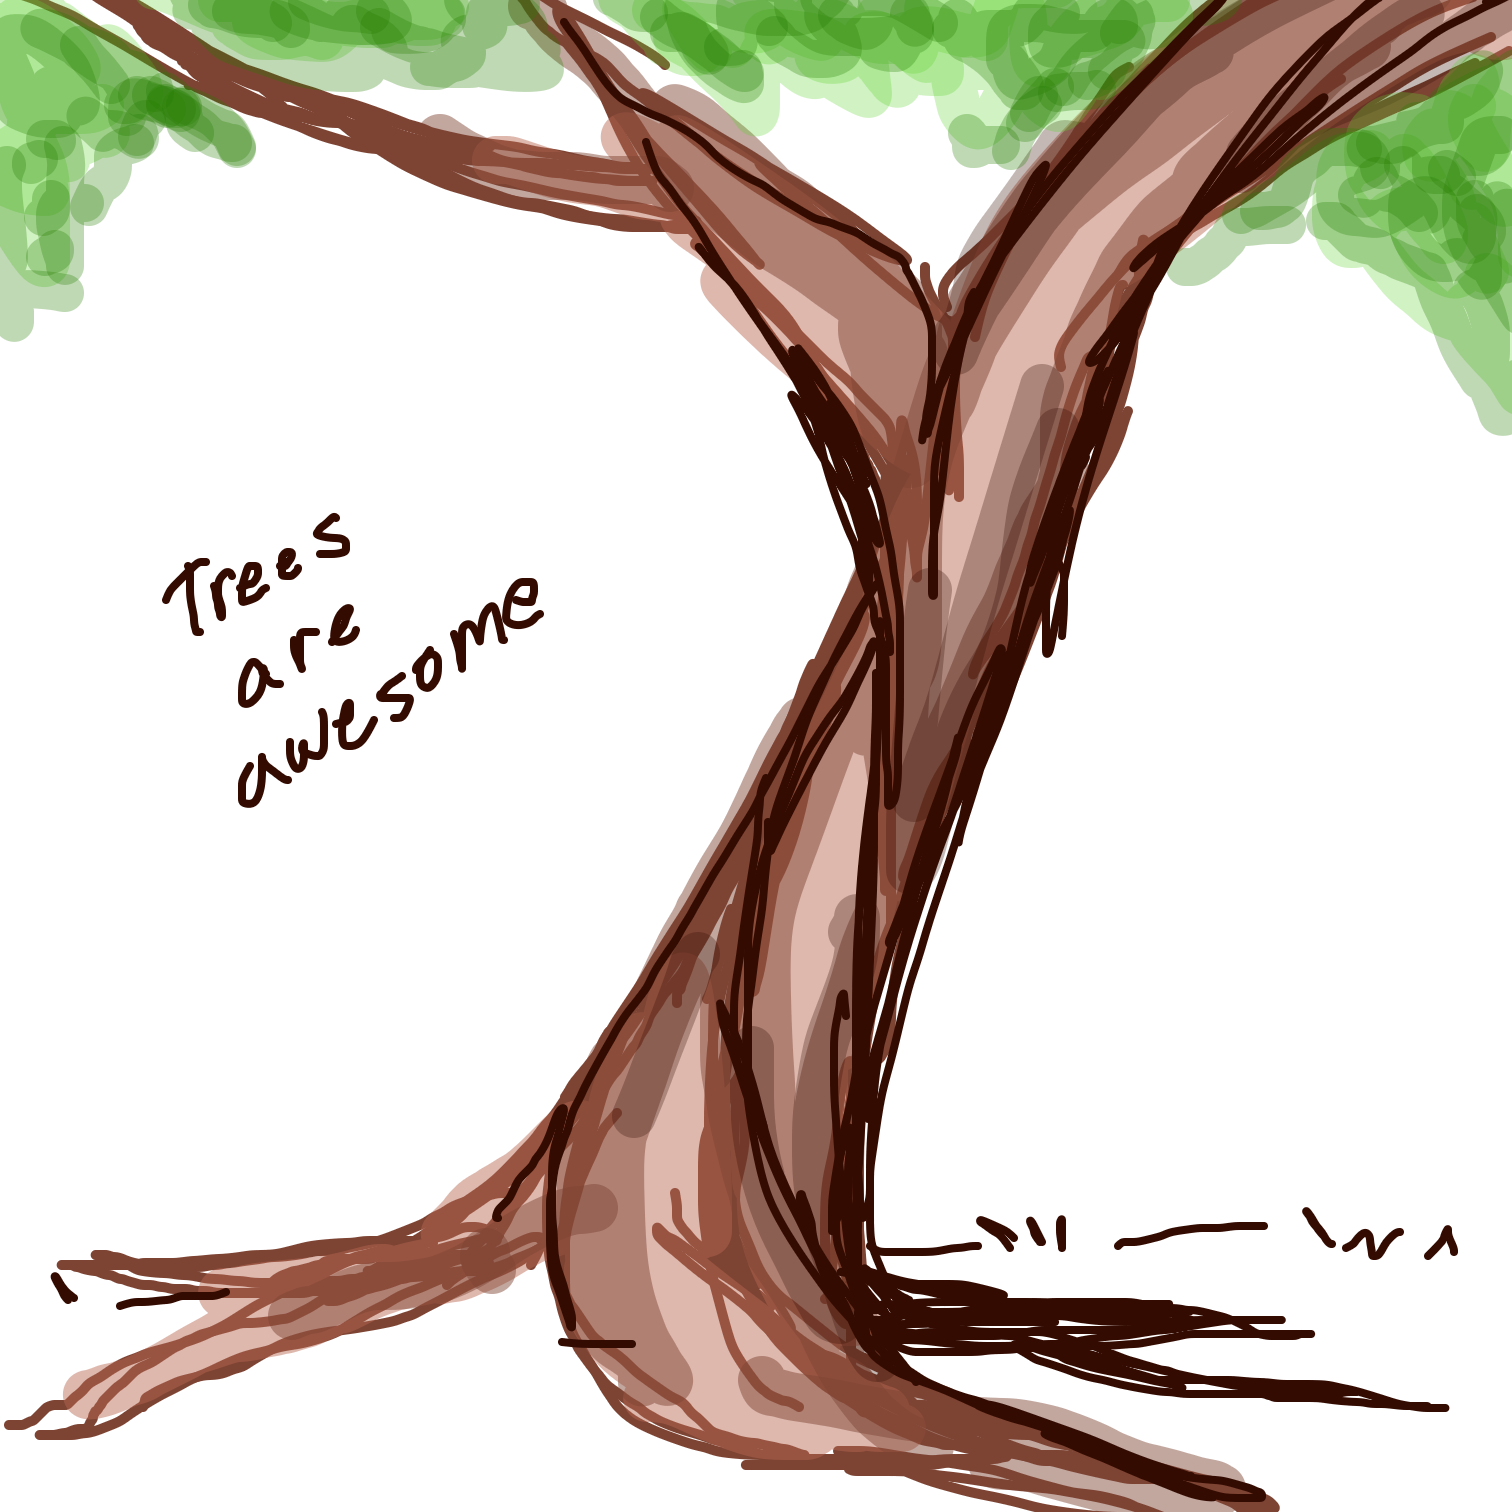 Drawing in Love your trees by Juleefish